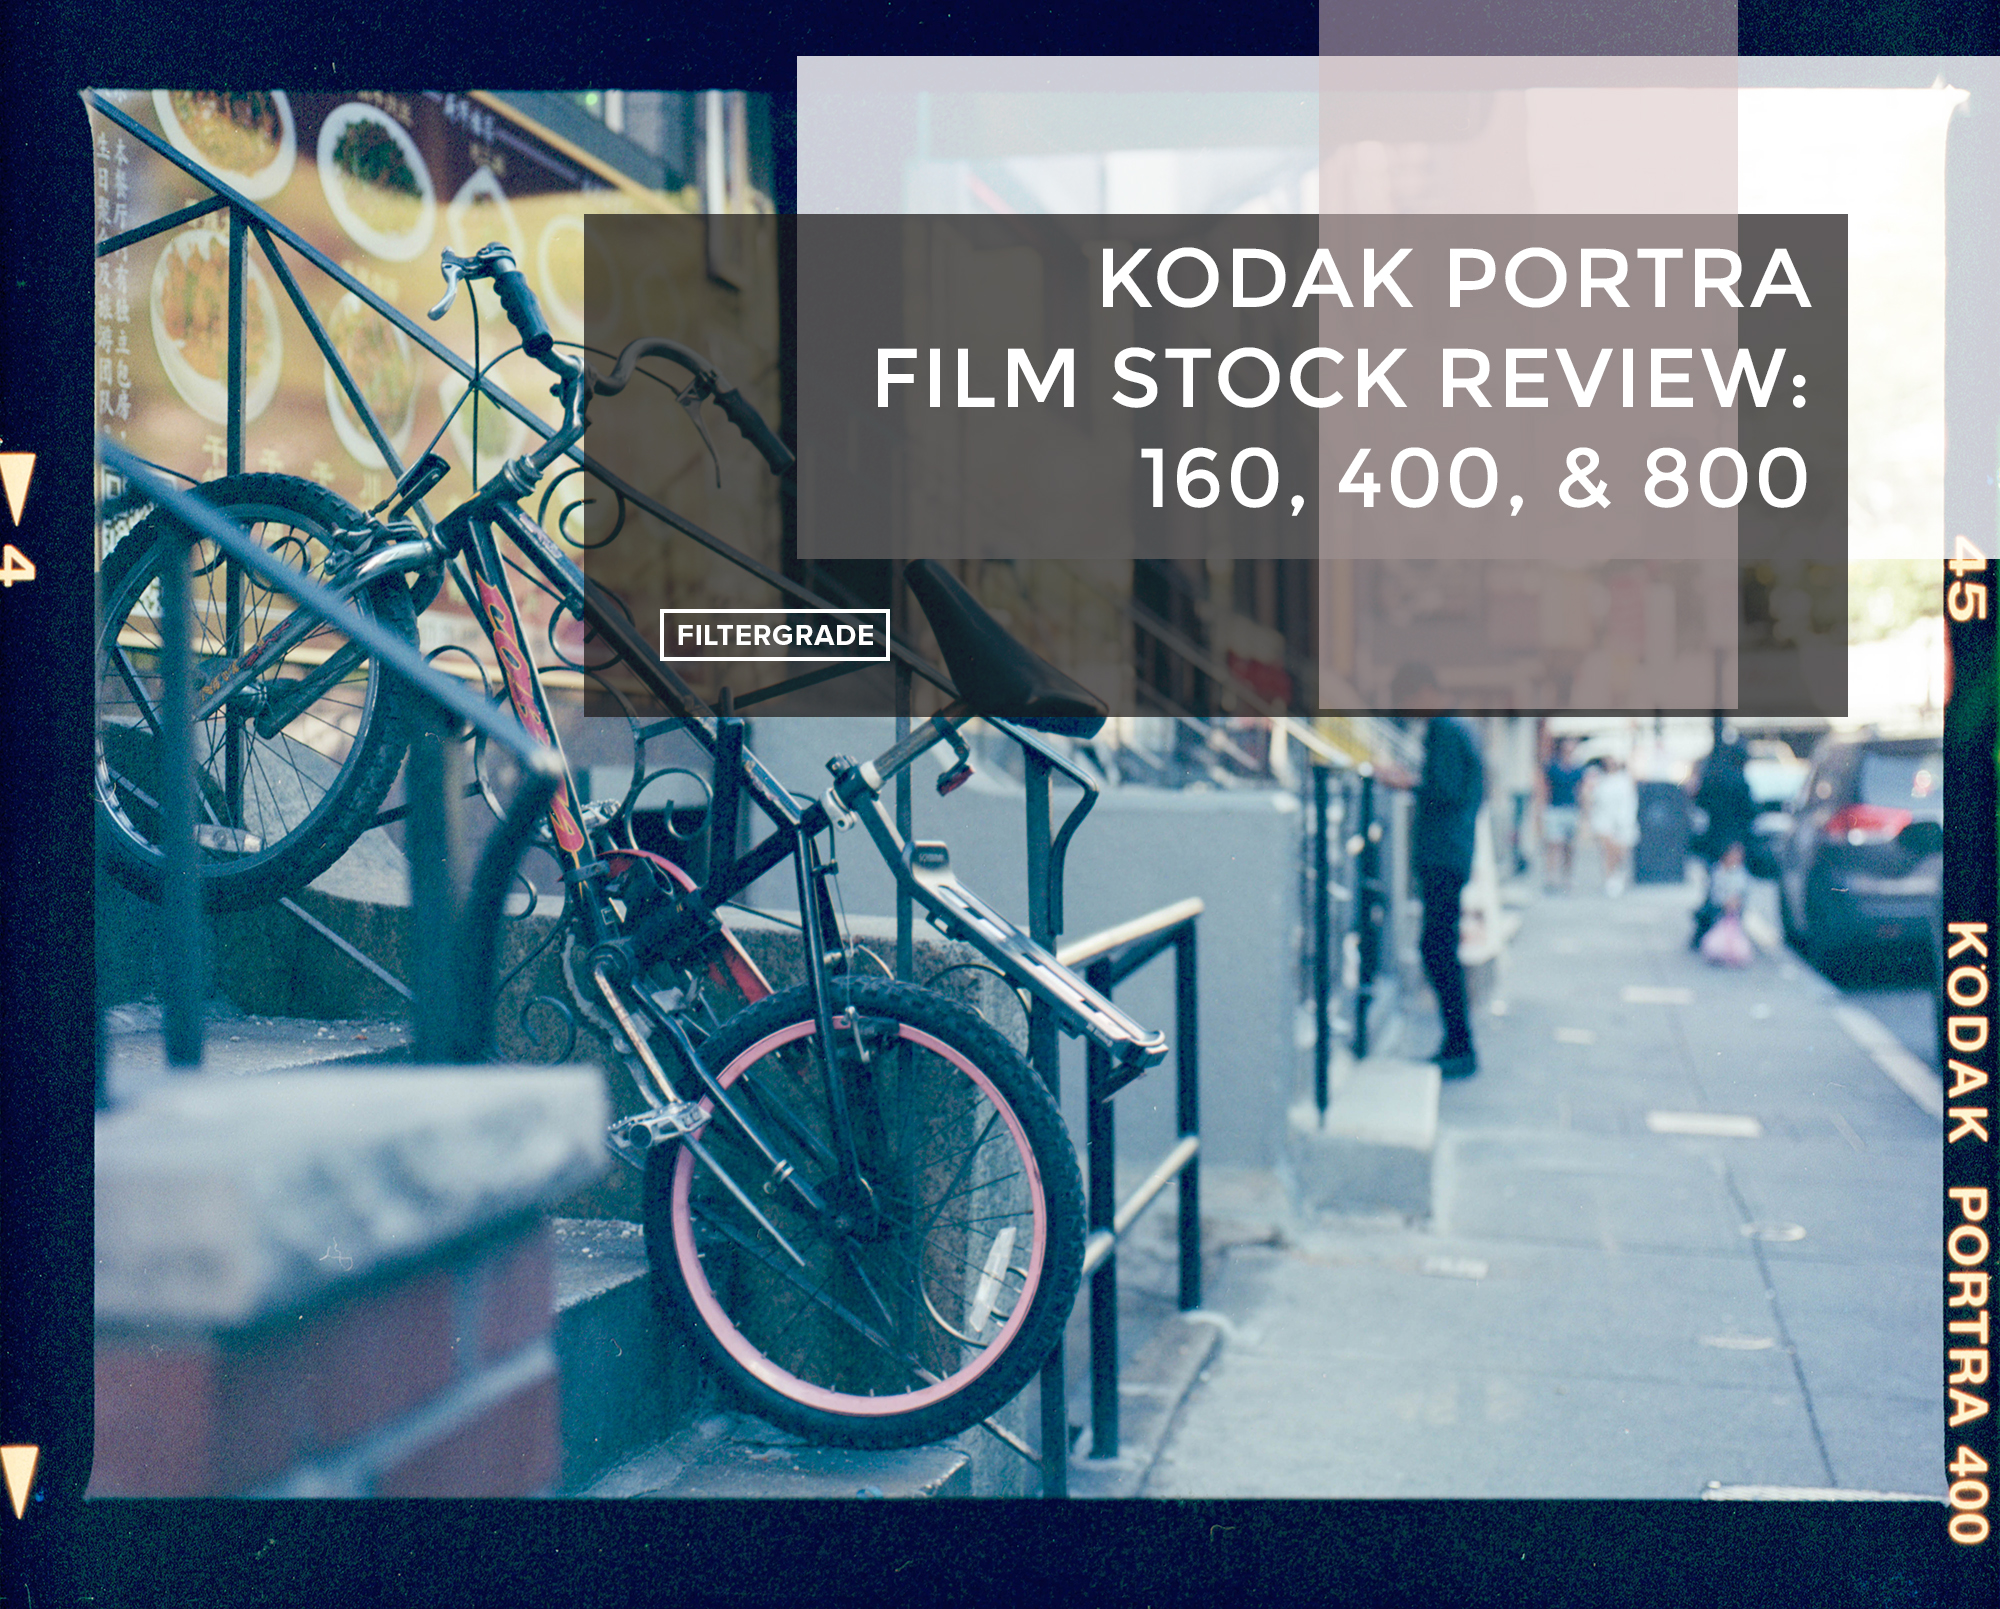 Cover - Kodak Portra Film Stock Review - 160, 400, & 800 - FilterGrade